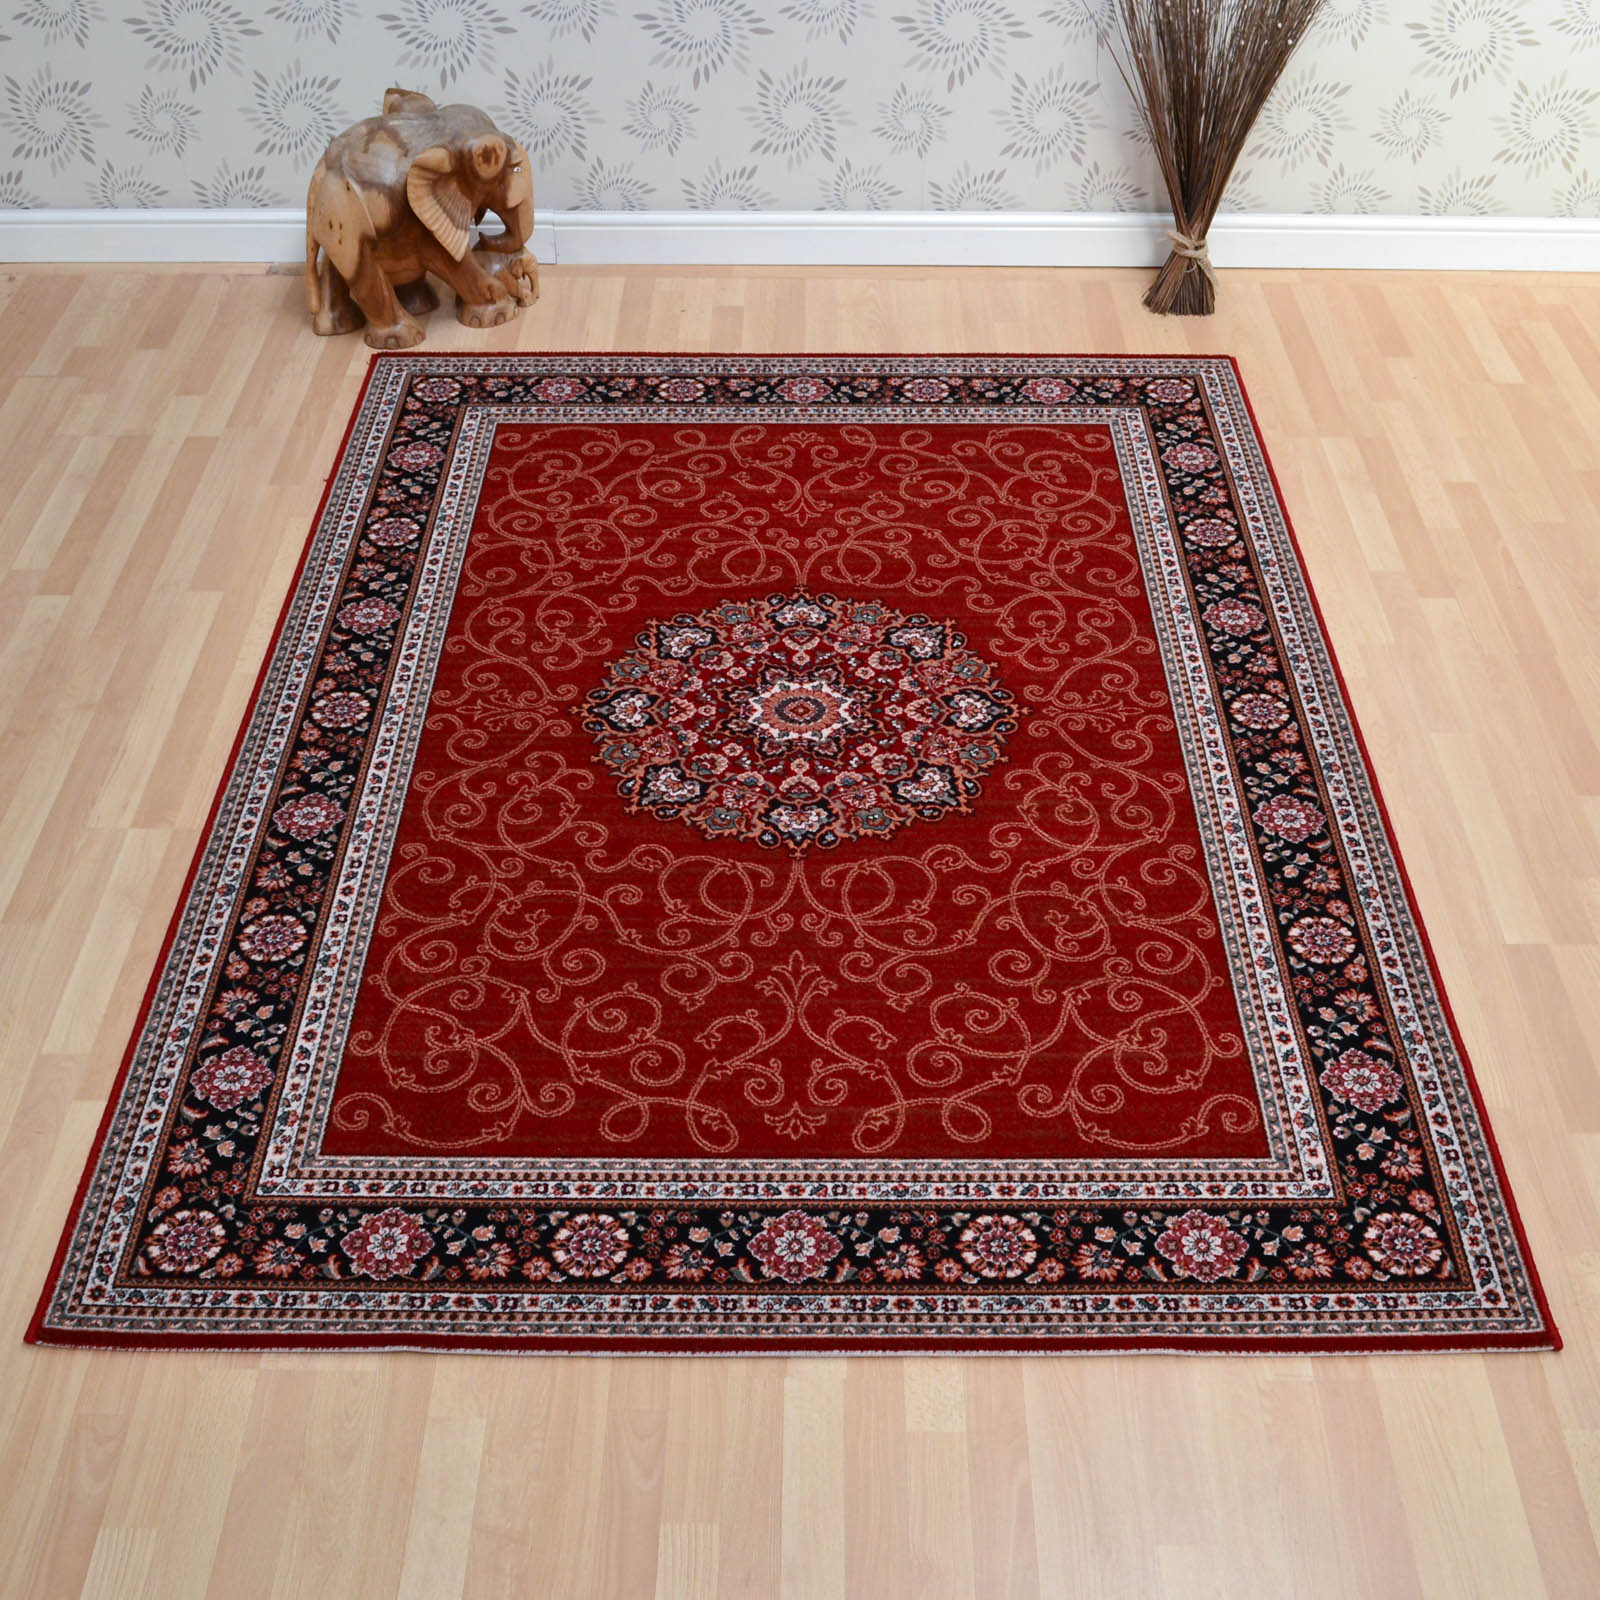 Lano Imperial Rugs 1954 684 in Rust